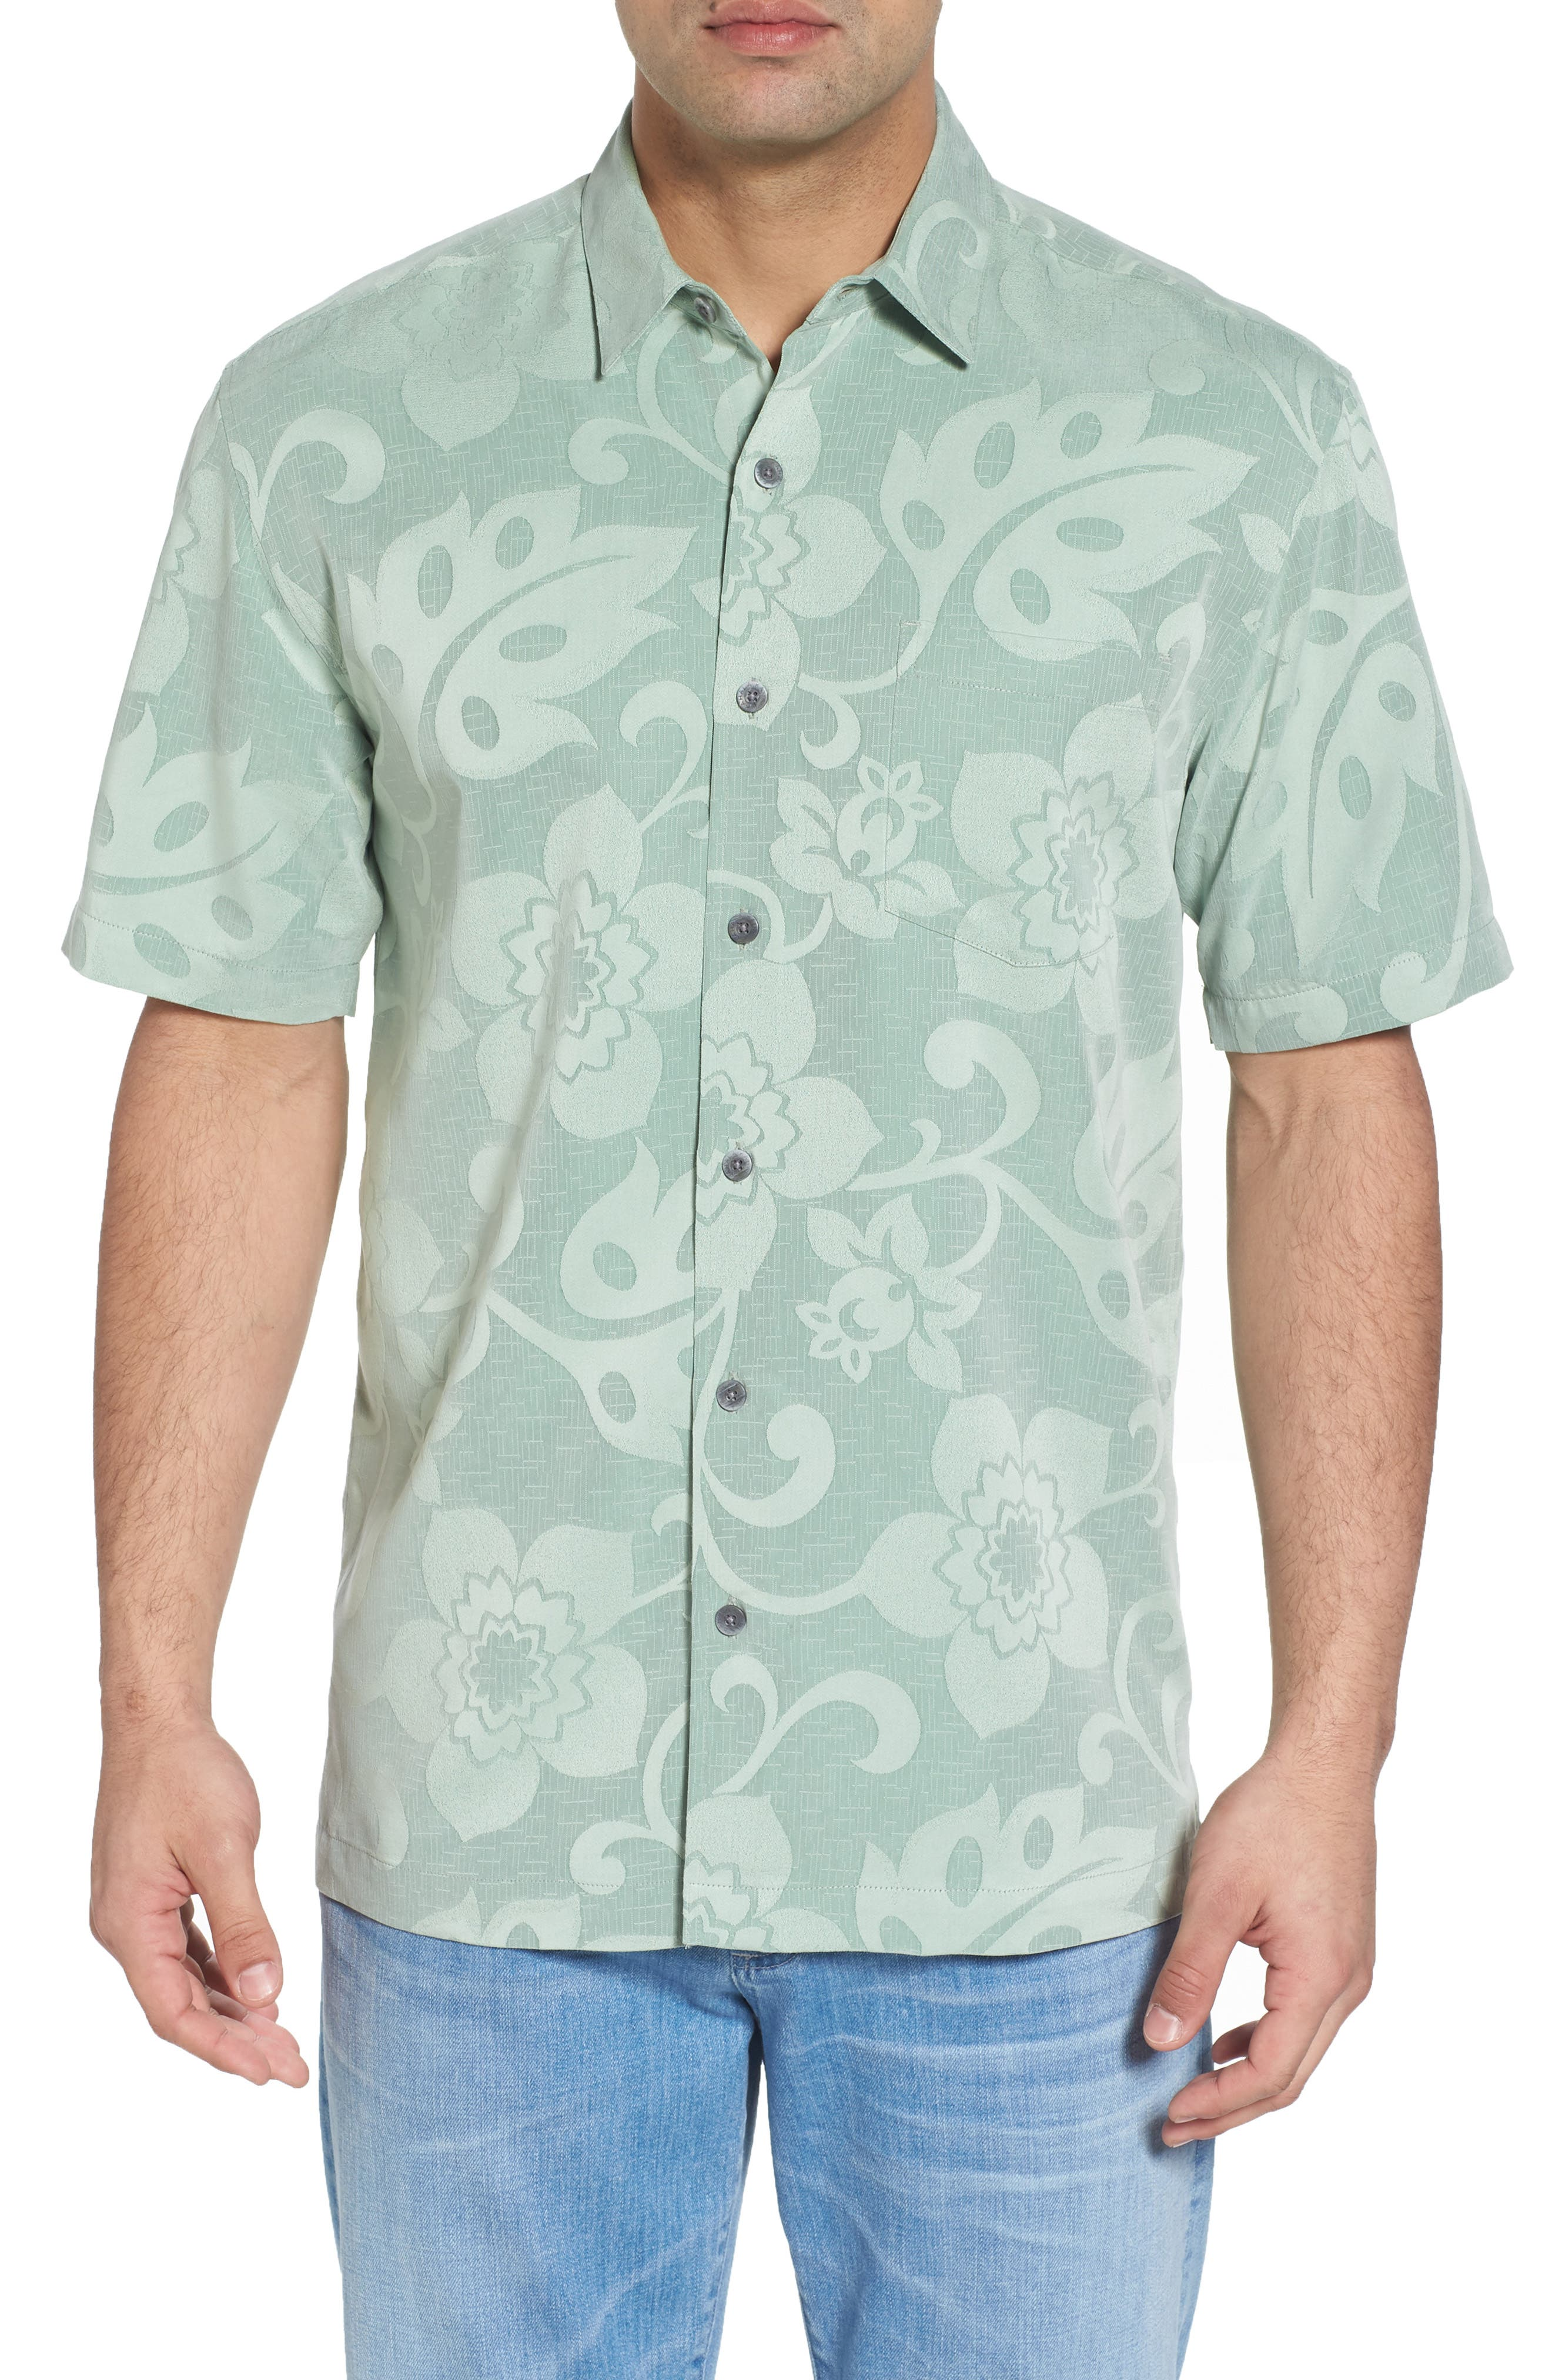 Kalawai Relaxed Fit Camp Shirt,                         Main,                         color, 310